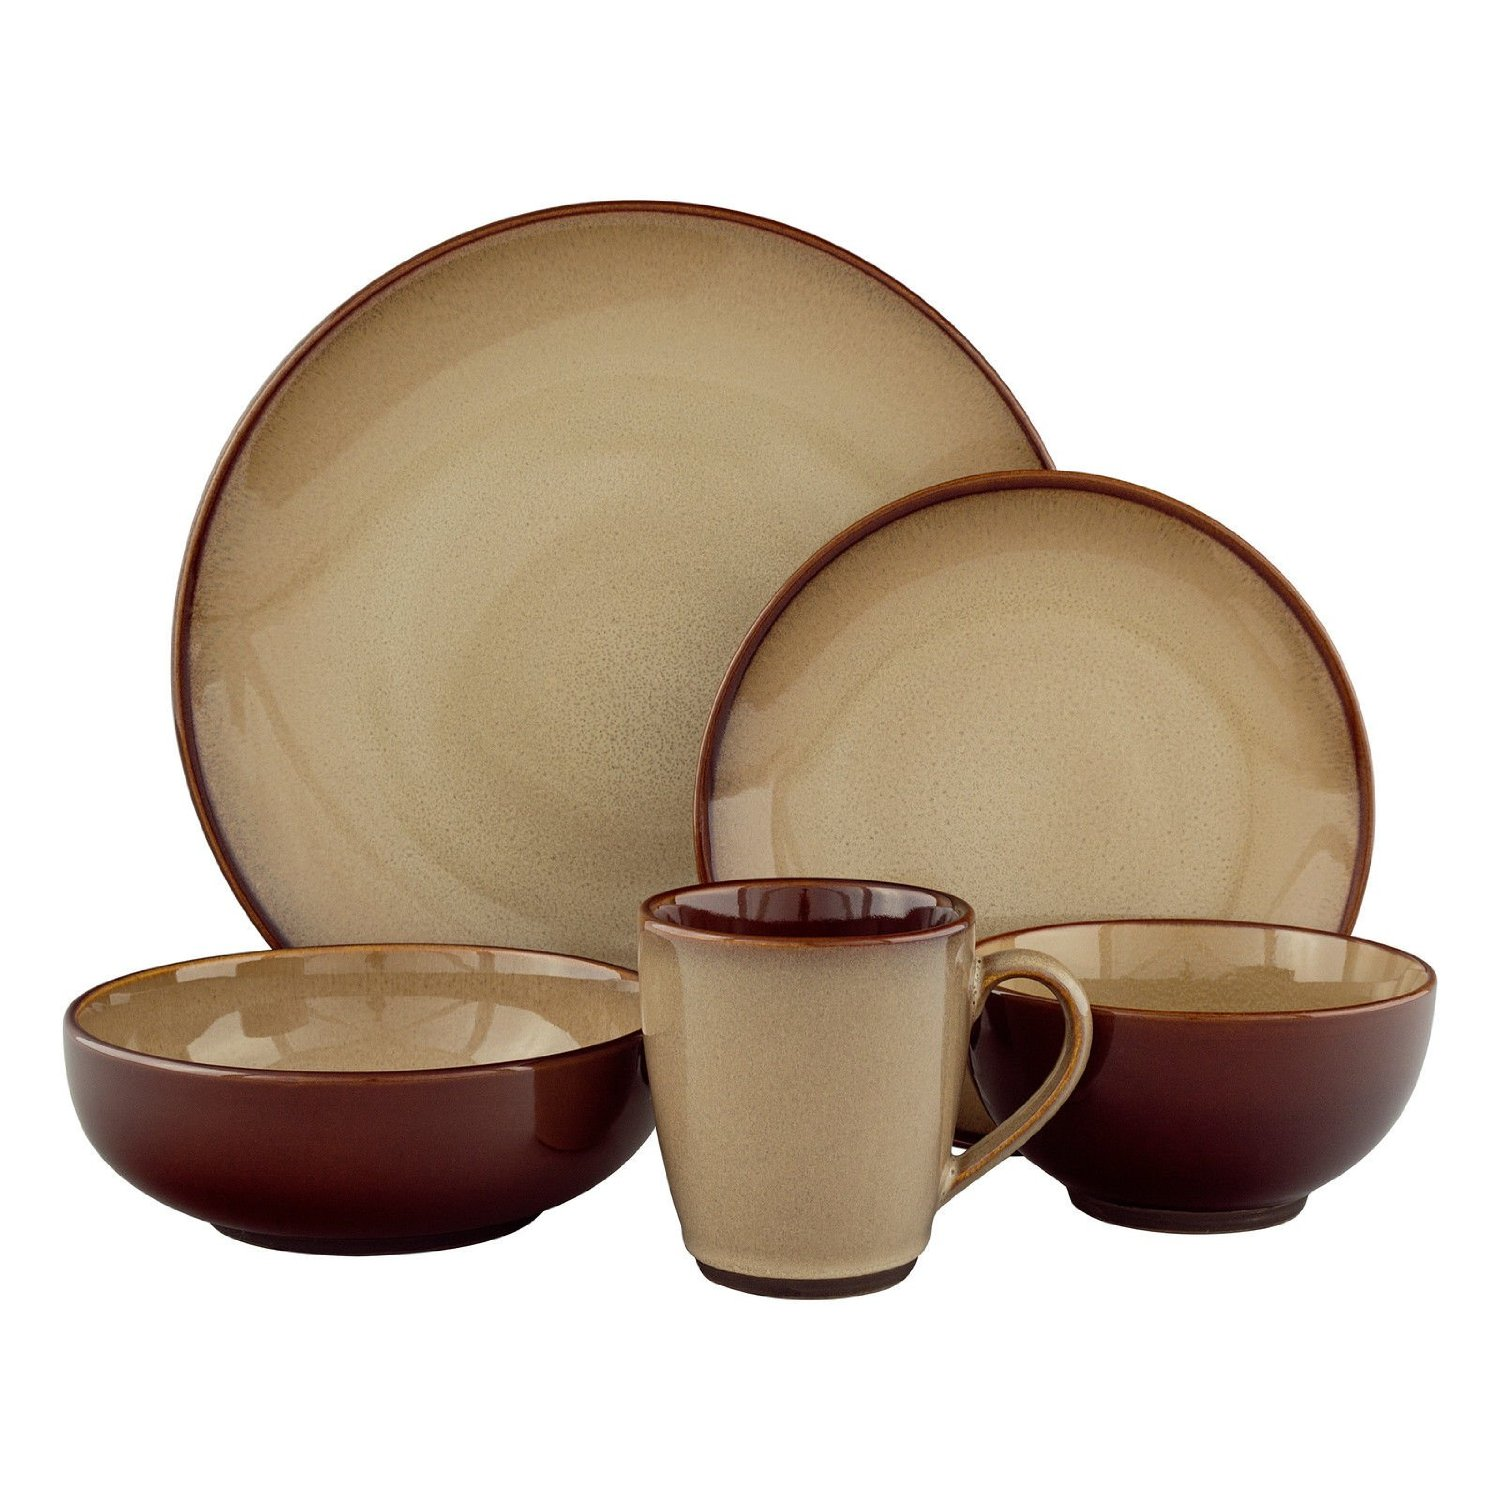 Terrific stoneware dinnerware for kitchen and dining sets with stoneware dinnerware sets  sc 1 st  Straydogrecordingco.com & Kitchen \u0026 Dining Sets: Wonderful Stoneware Dinnerware For Kitchen ...